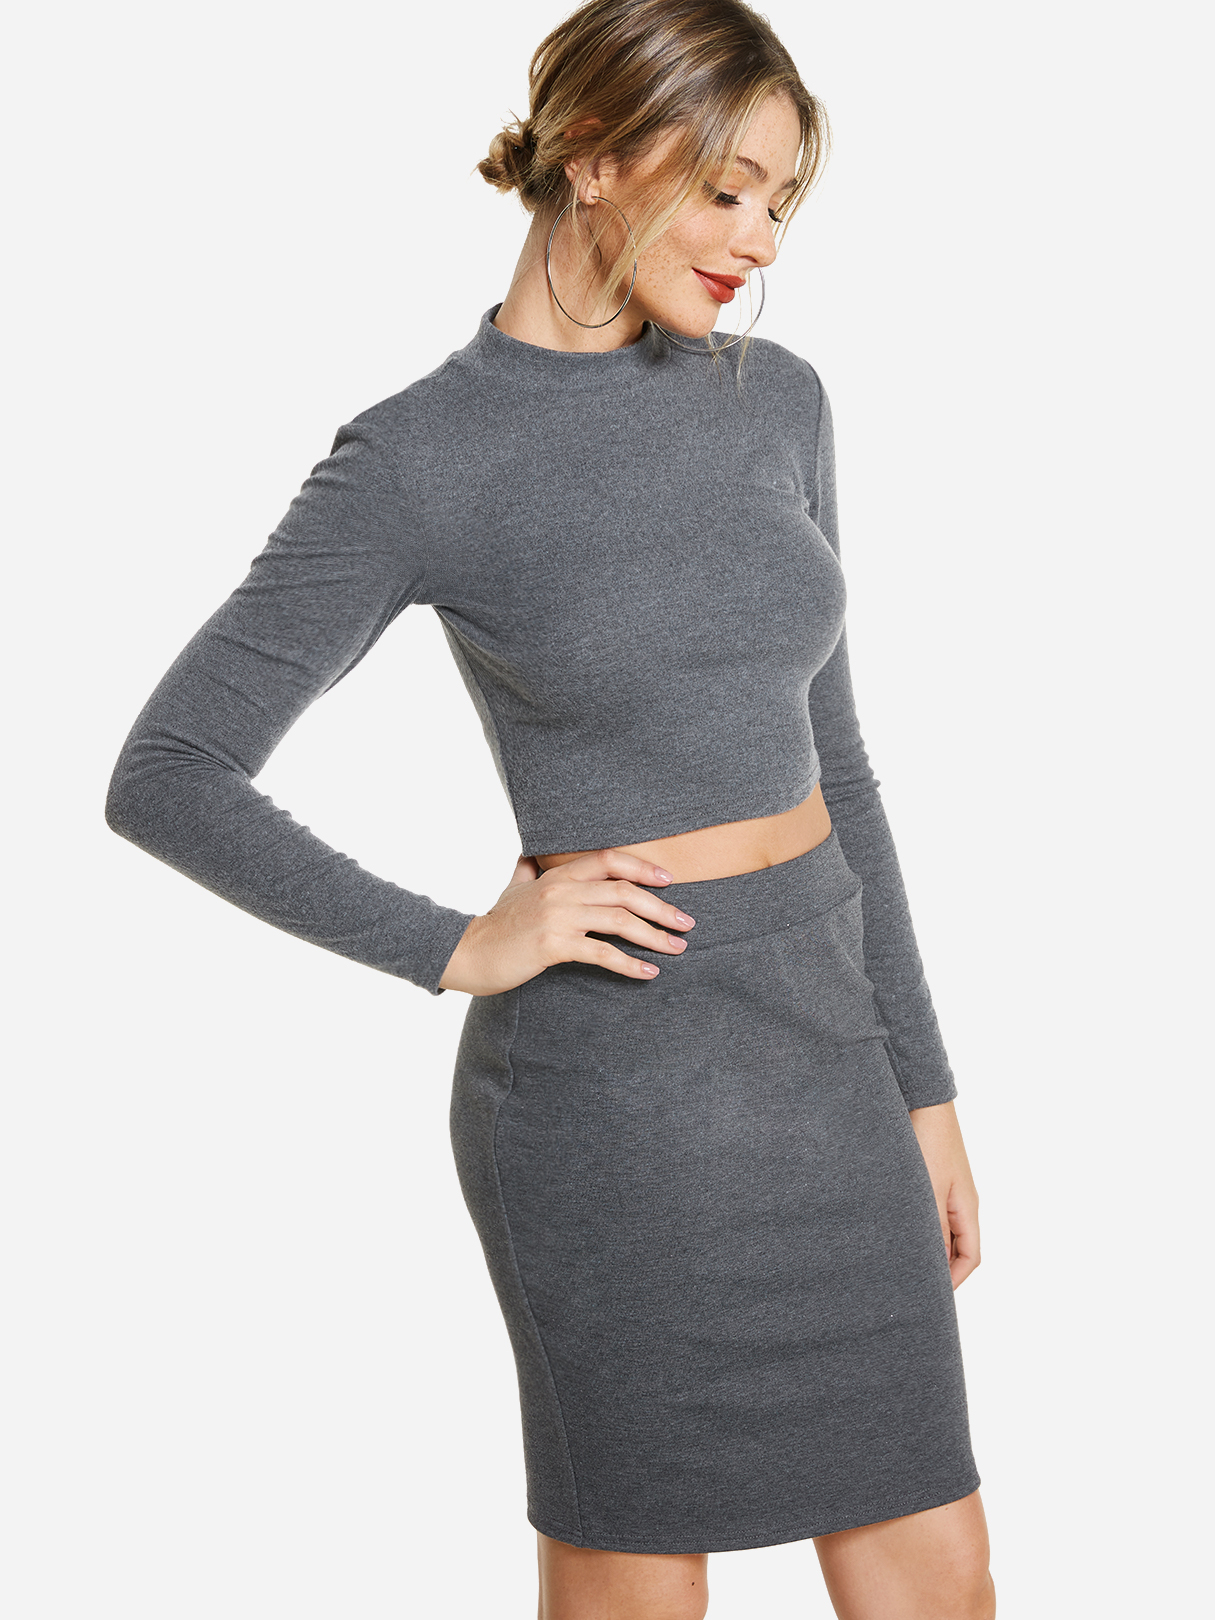 Grey Plain Perkins Collar Long Sleeves Bodycon Fit Top